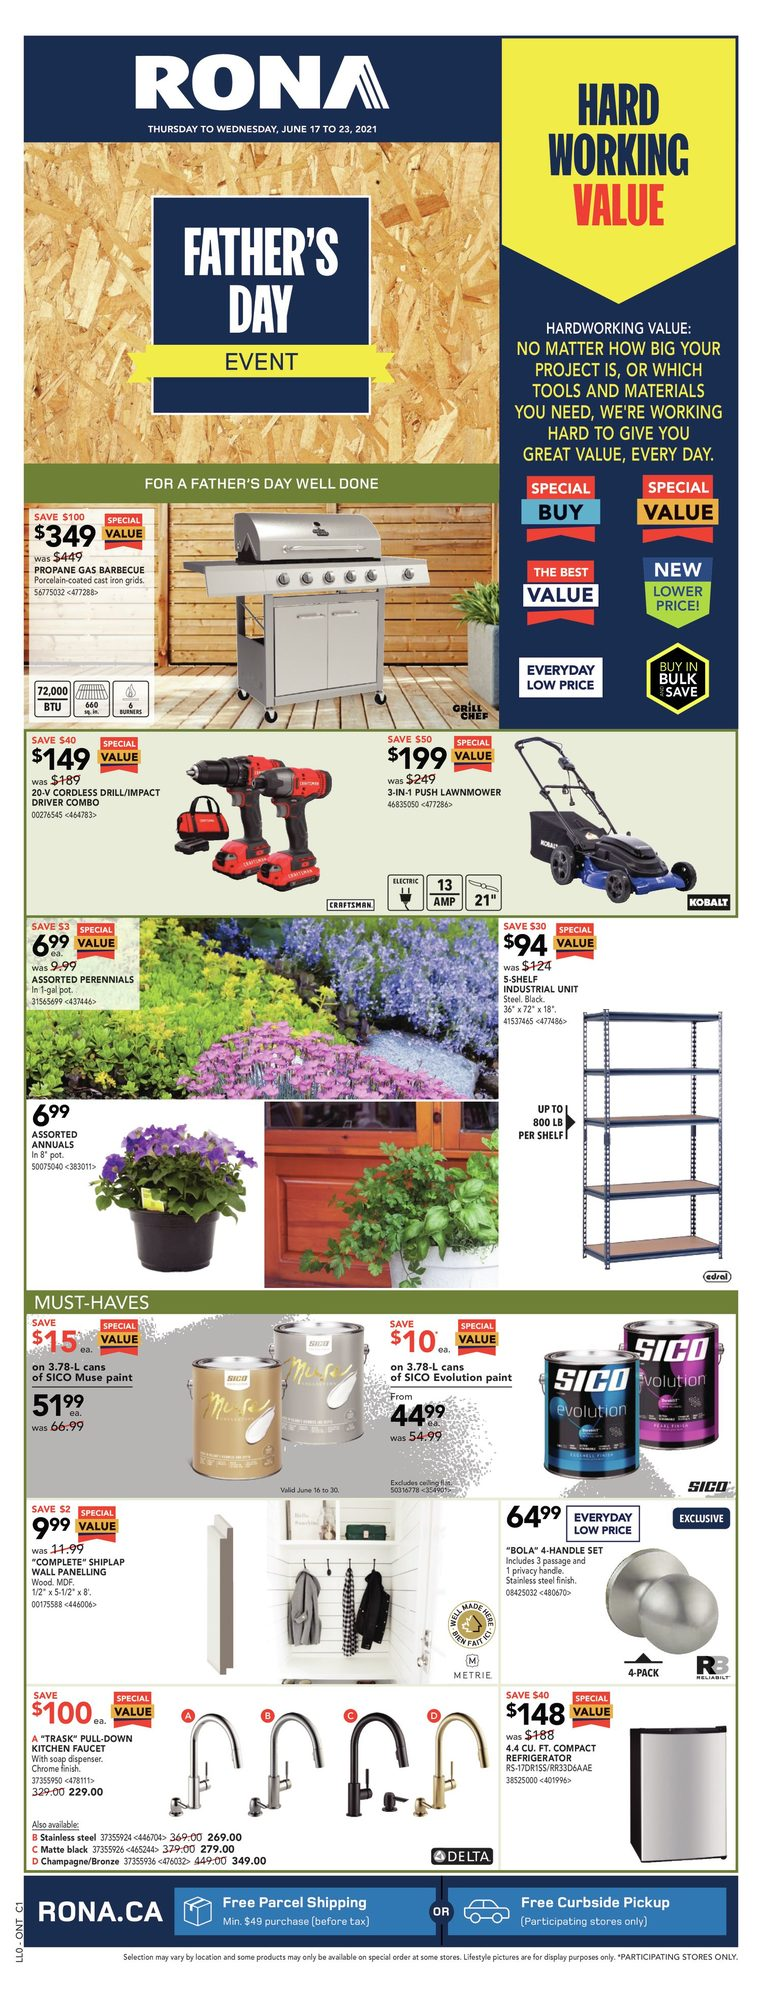 Rona - Weekly Flyer Specials - Father's Day Event